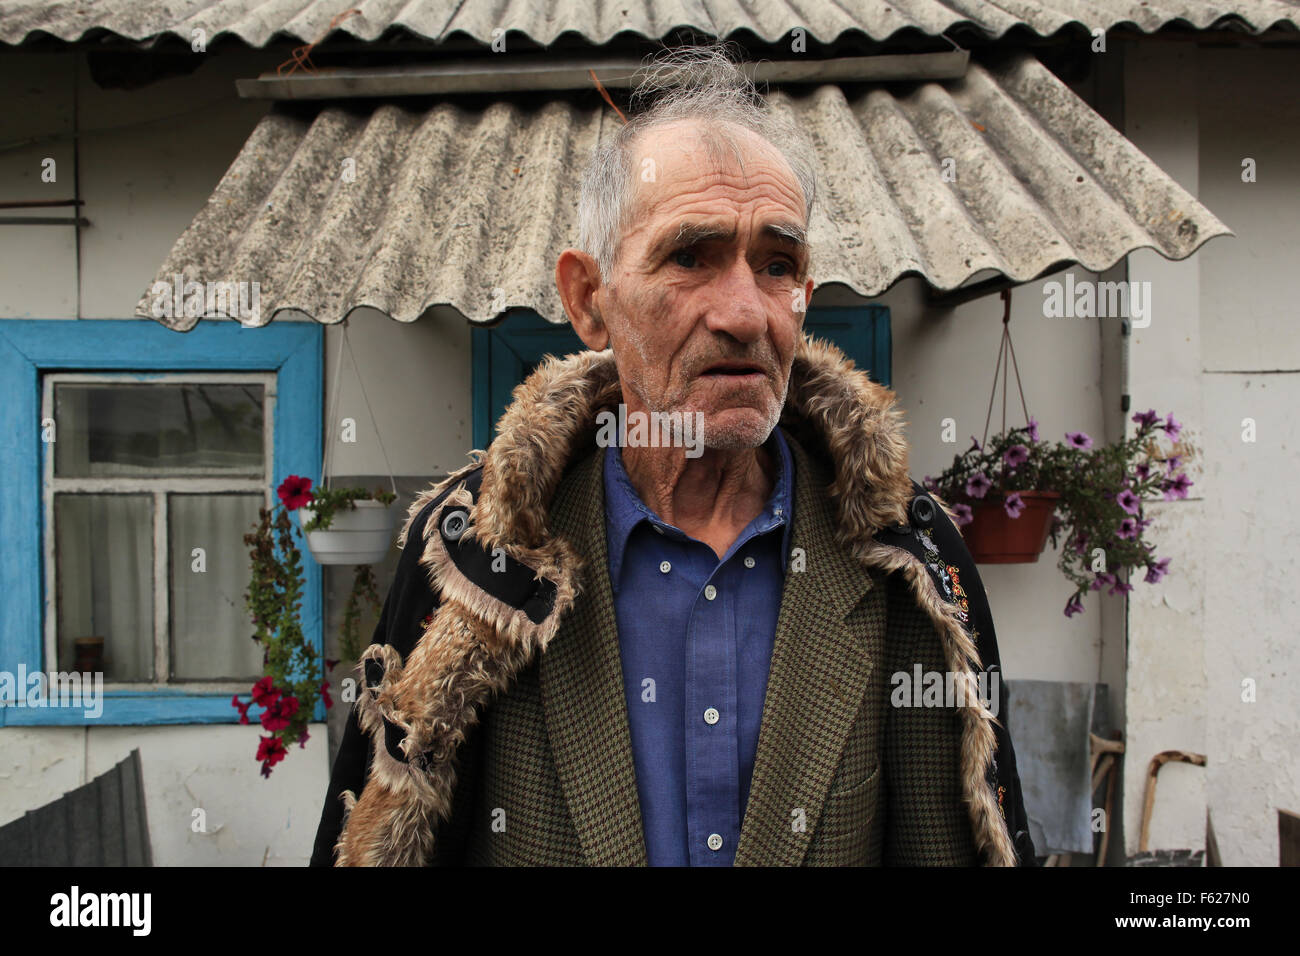 The returnee Ivan Ilchenko (82) in front of his house in the village Kupovate, located in the Chernobyl Exclusion - Stock Image